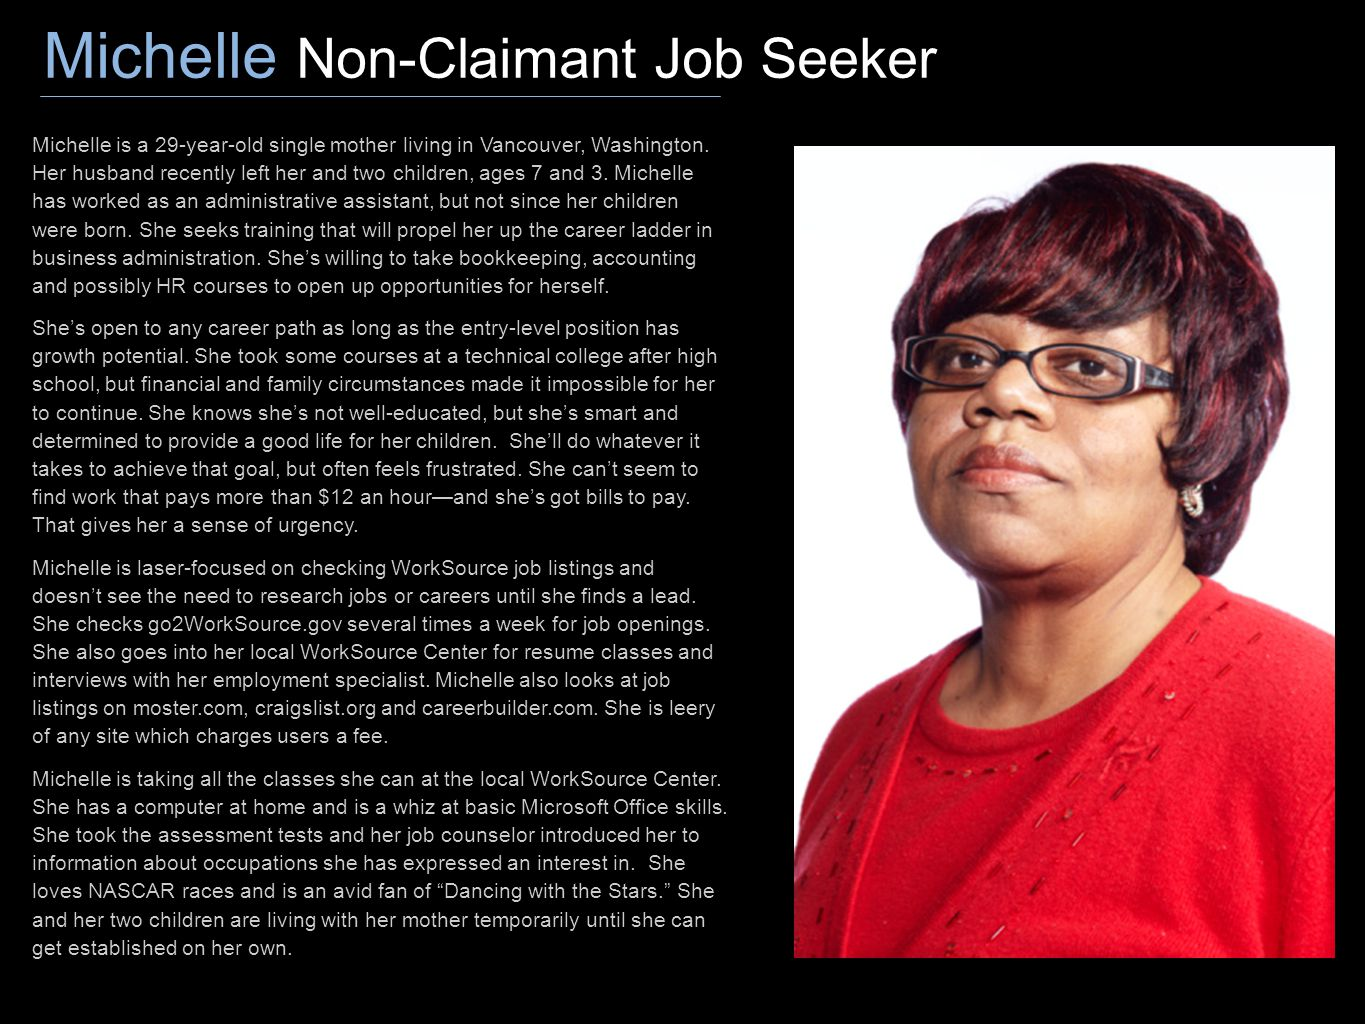 Michelle Non-Claimant Job Seeker Michelle is a 29-year-old single mother living in Vancouver, Washington. Her husband recently left her and two childr